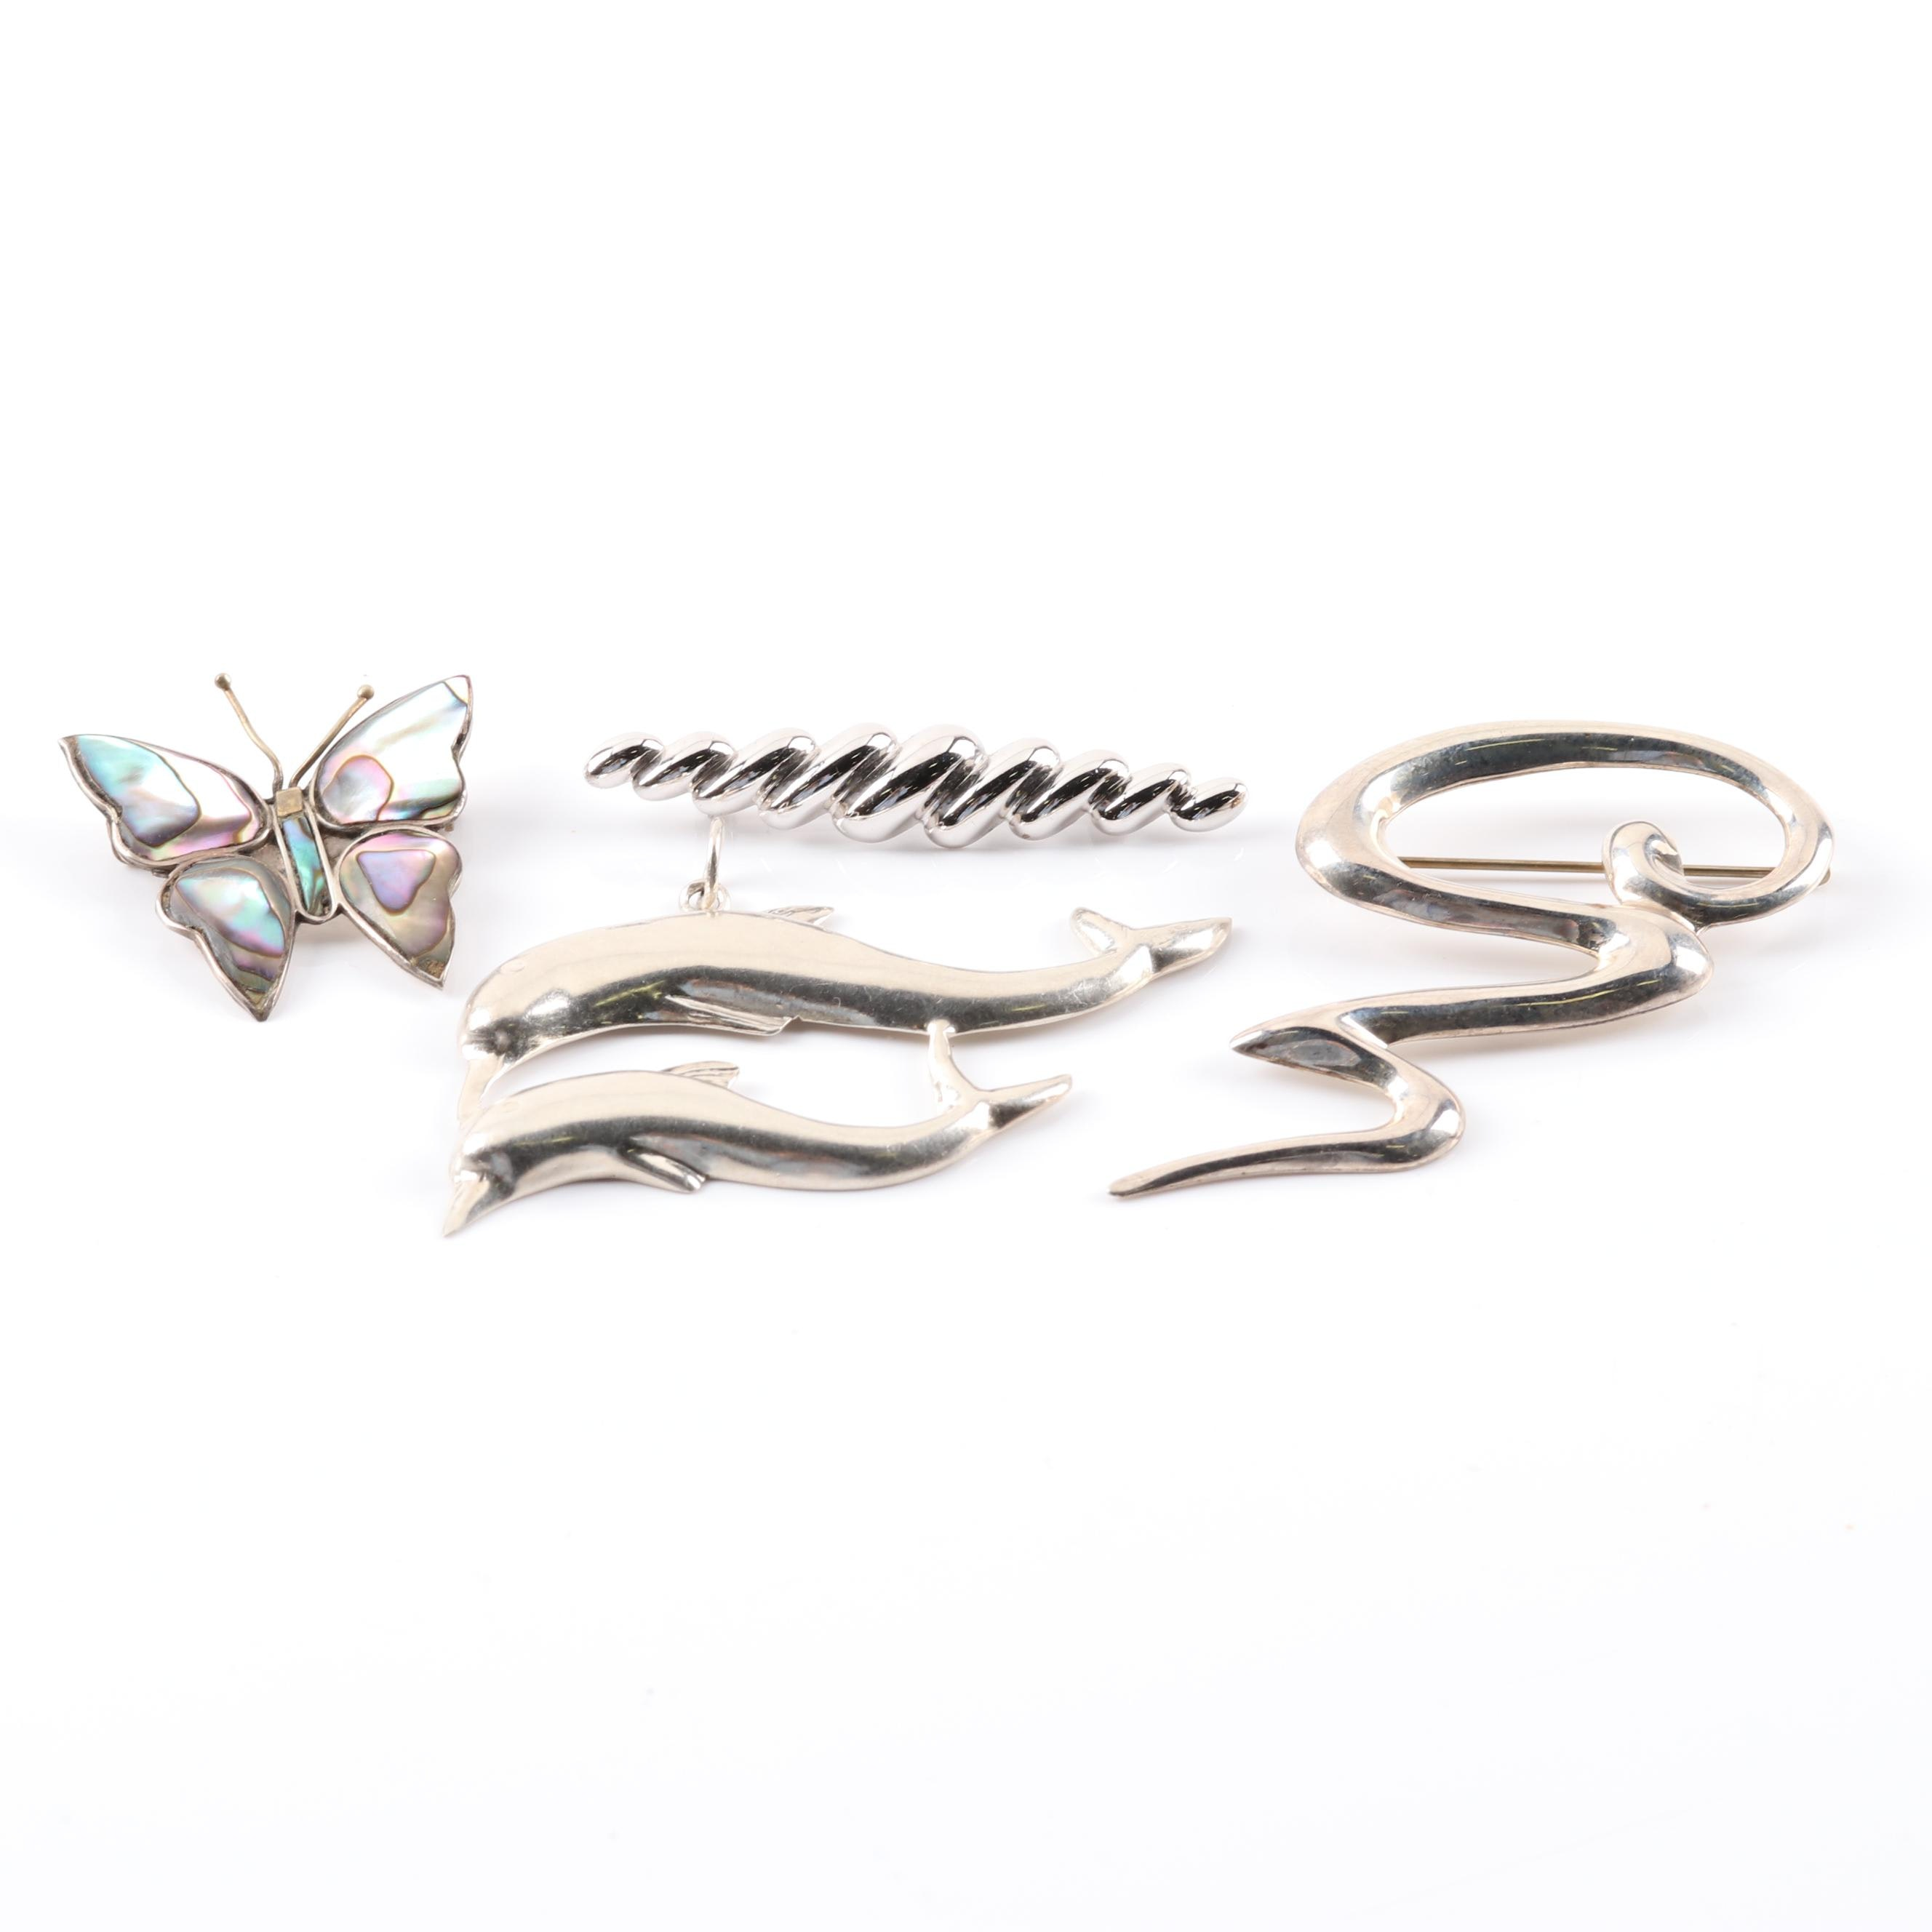 Sterling Silver Brooches and Pendant featuring Beau